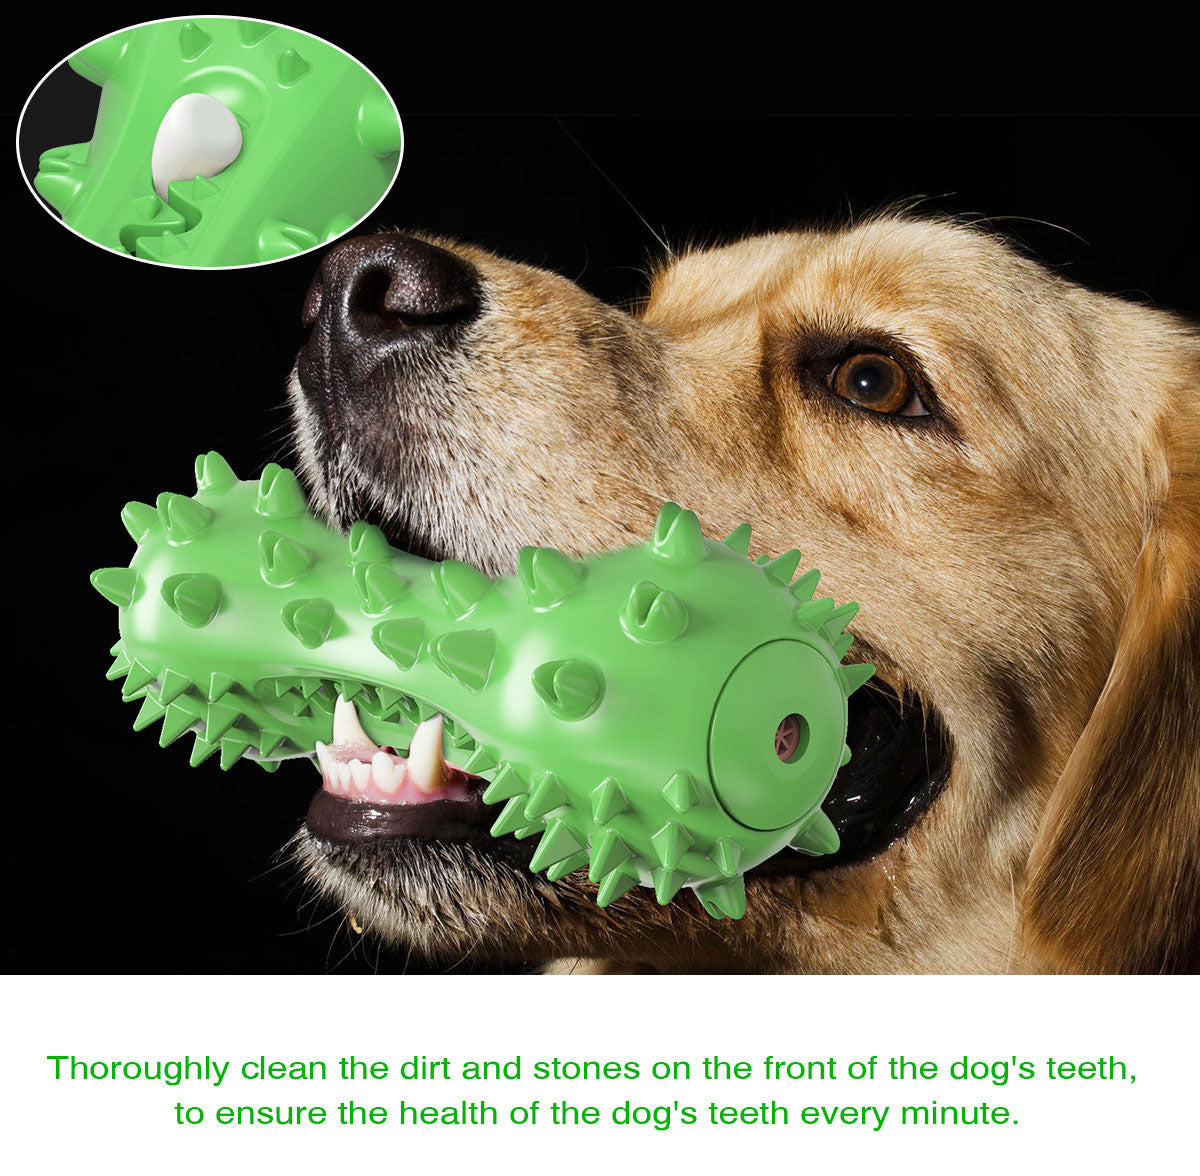 PETDURO Dog Toy Toothbrush Chew Stick Indestructible Teeth Cleaning Squeaker